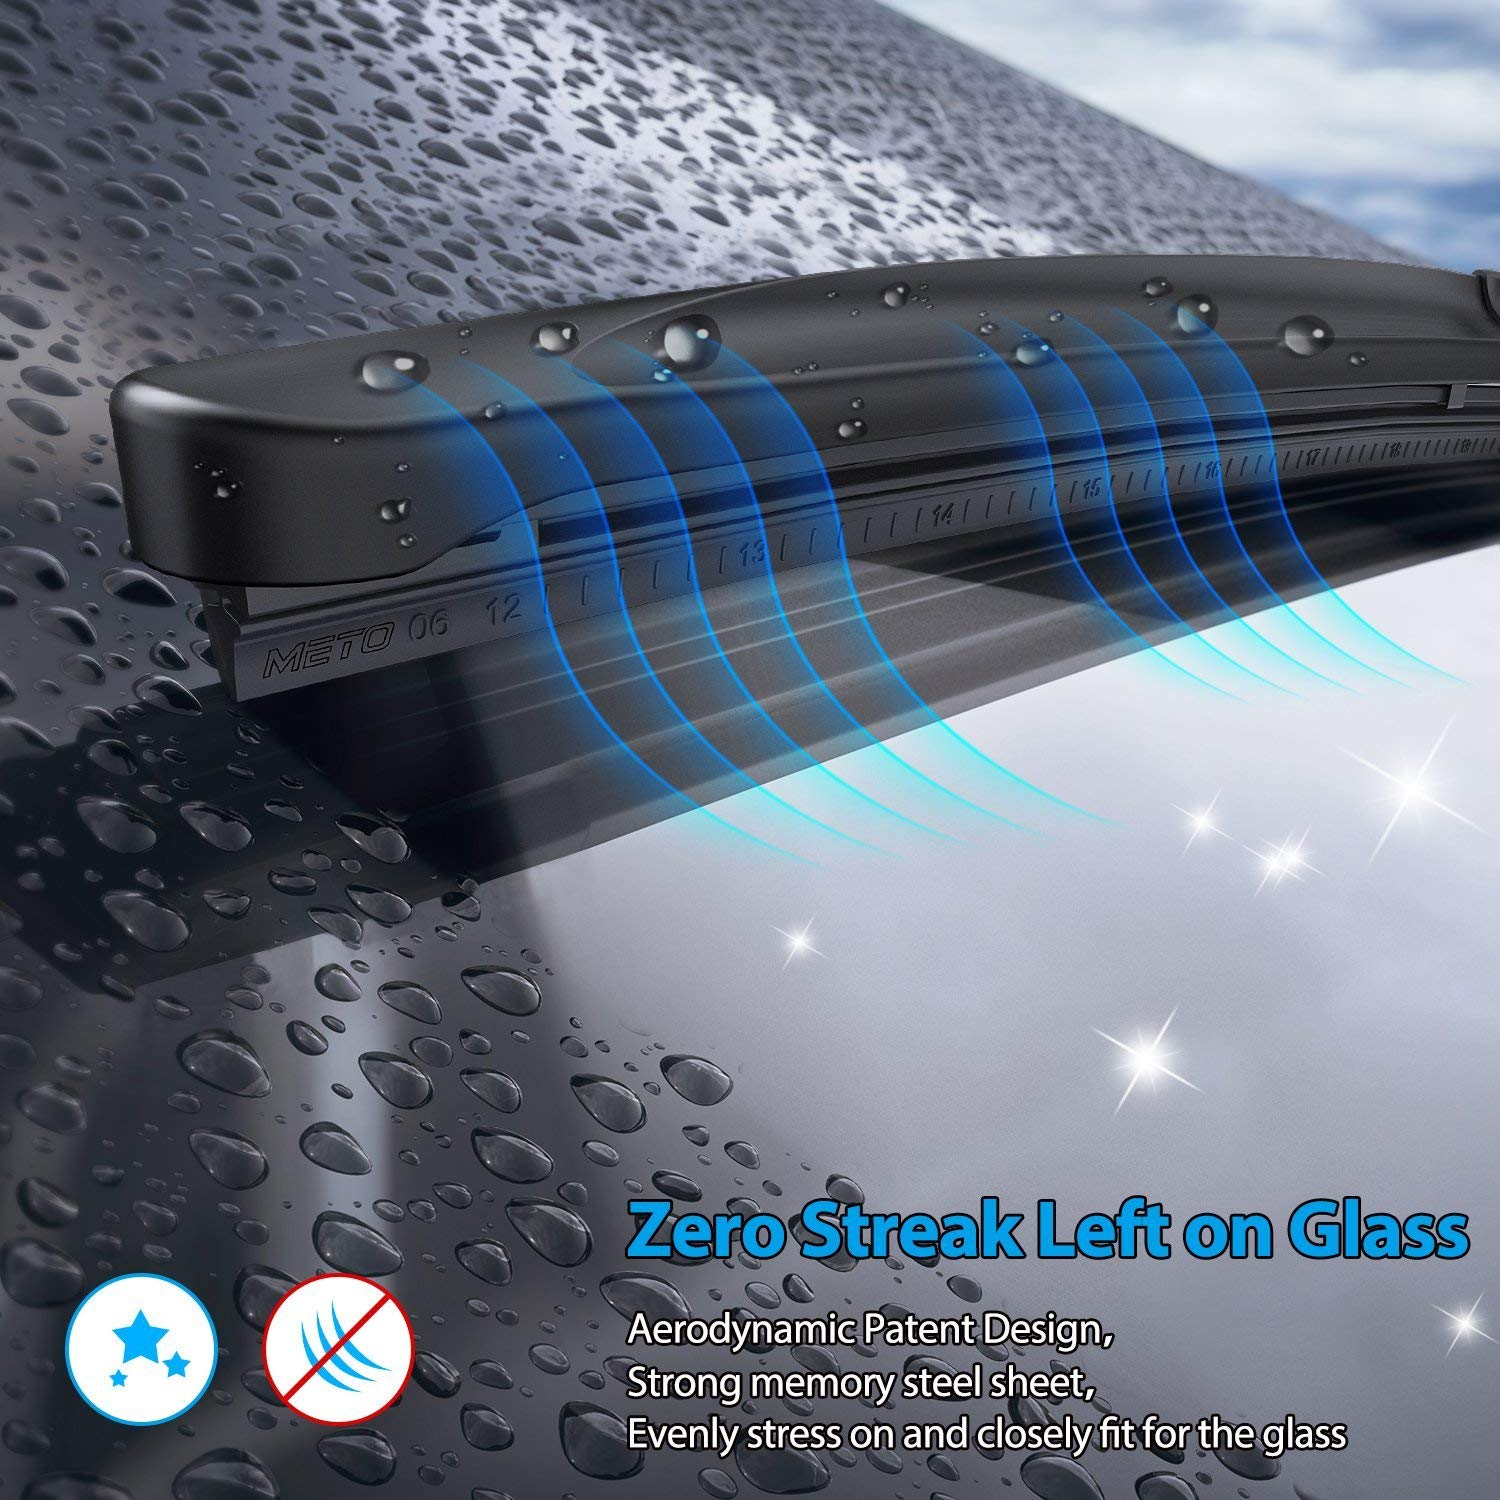 METO T6 20 Windshield Wiper : Water Repellency Polymer Materials Silence Blade METO T6 20 Windshield Wiper : Water Repellency Polymer Materials Silence Blade for All Season even Clean Ice /& Snow in Winter Pack of 1 Up to 60/% Longer Life Wiper Blade